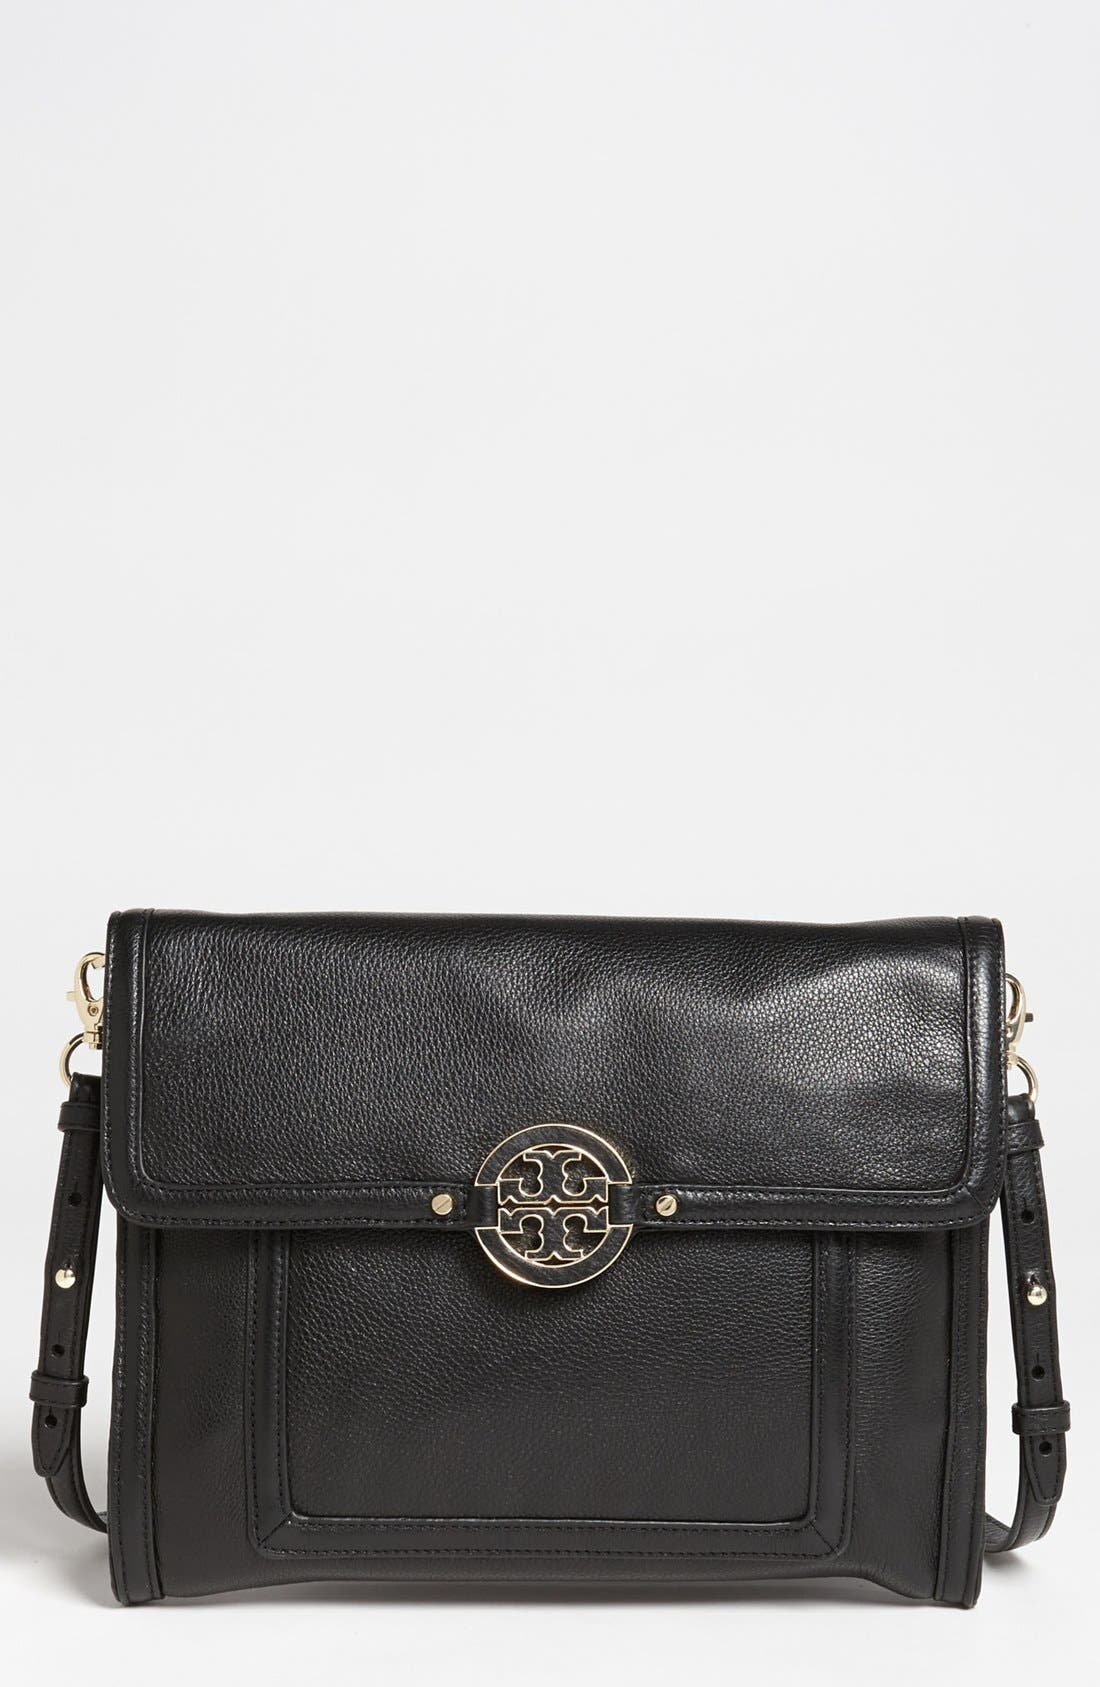 Alternate Image 1 Selected - Tory Burch 'Amanda' Crossbody Bag